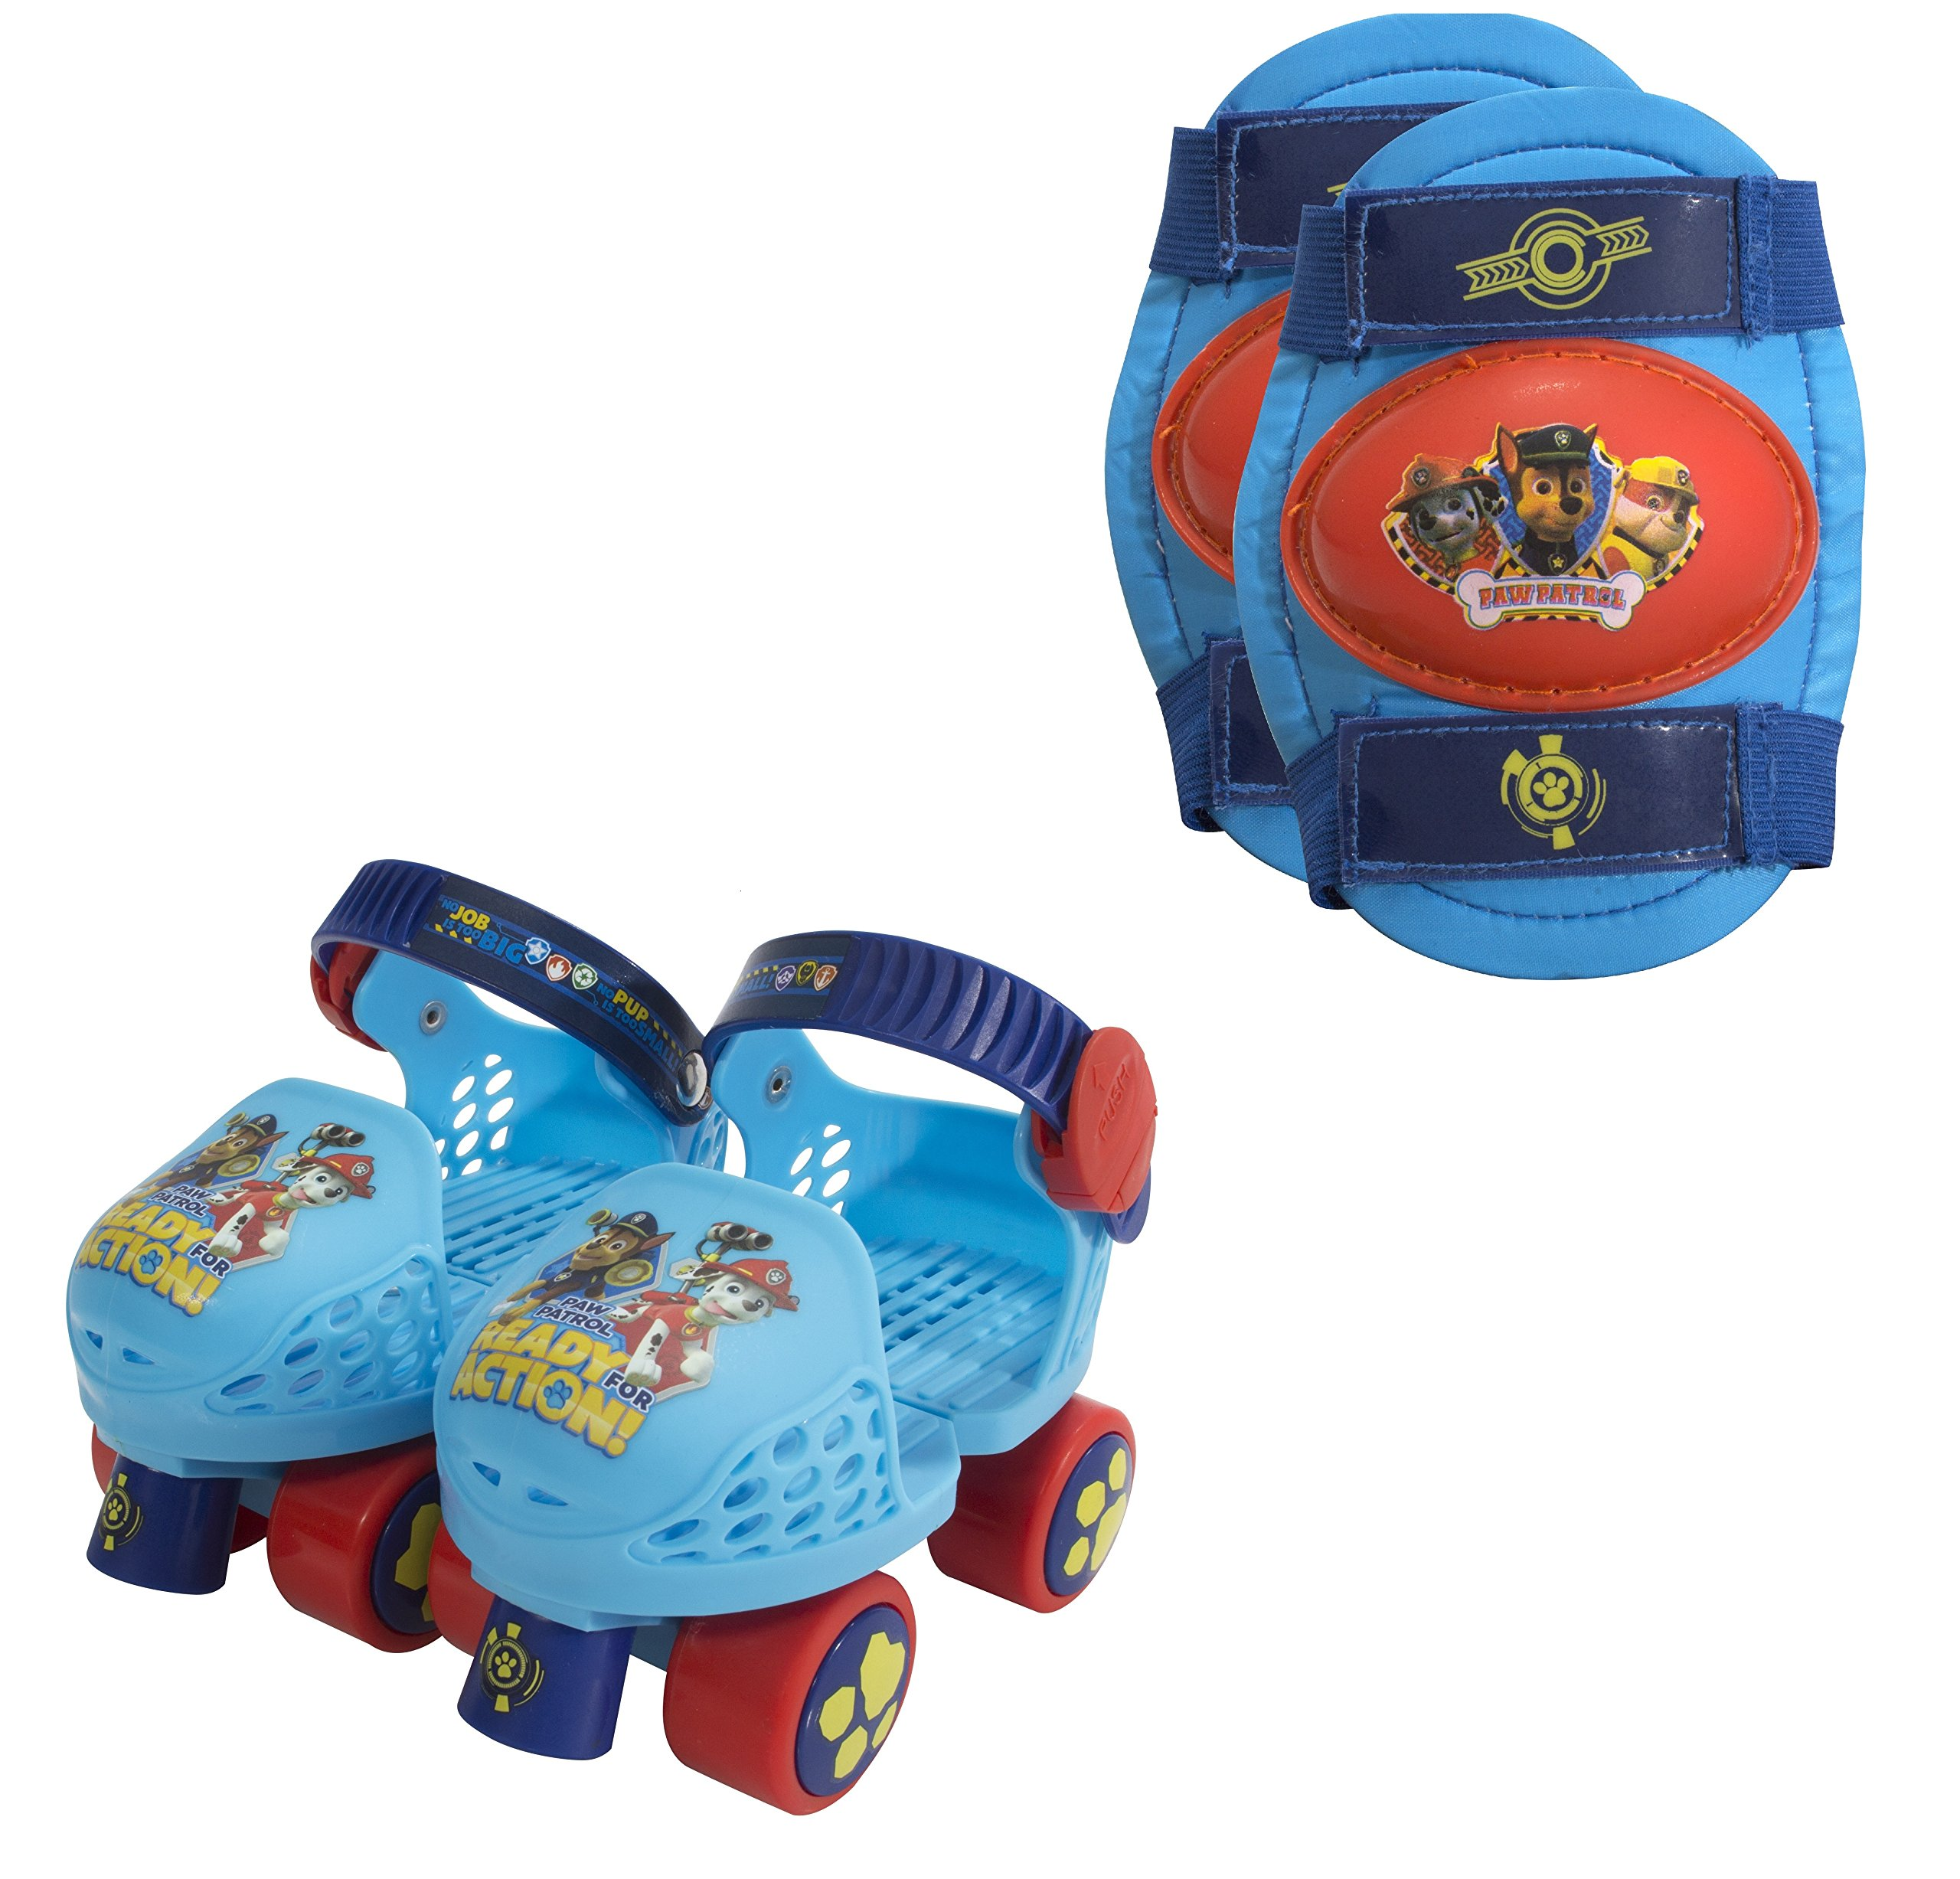 PlayWheels PAW Patrol Roller Skates with Knee Pads, Blue/Red Junior Size 6-12